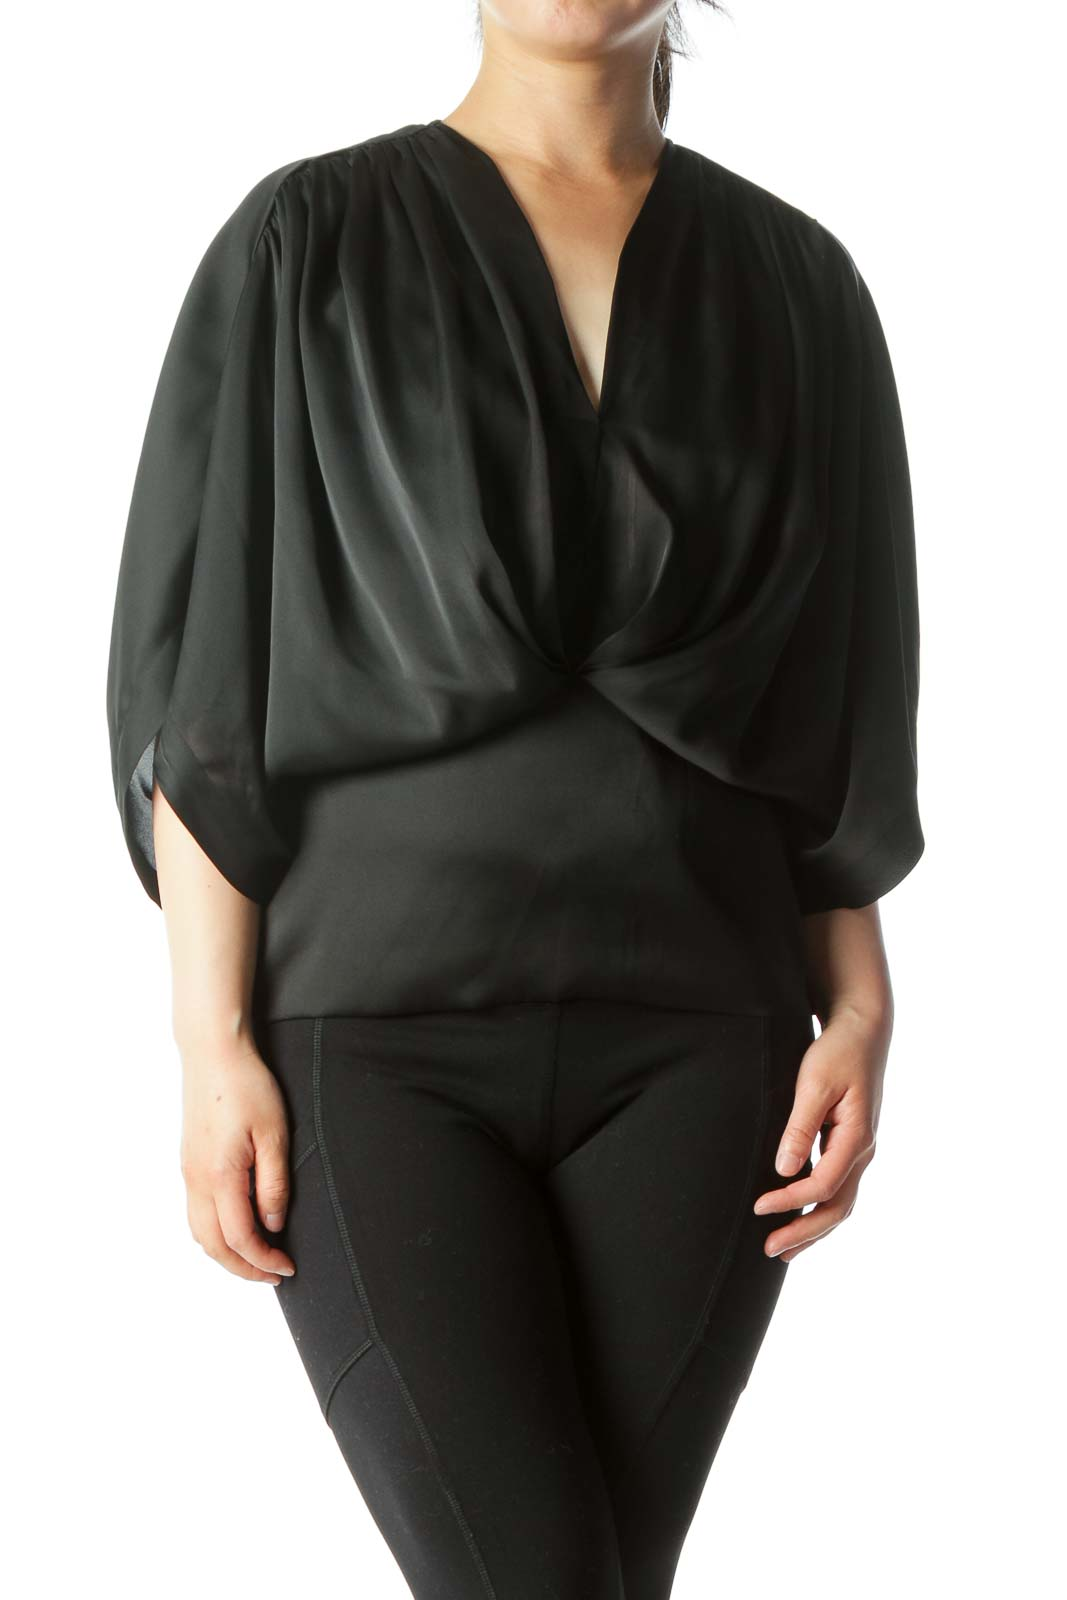 Black Bat-Sleeve Top Front